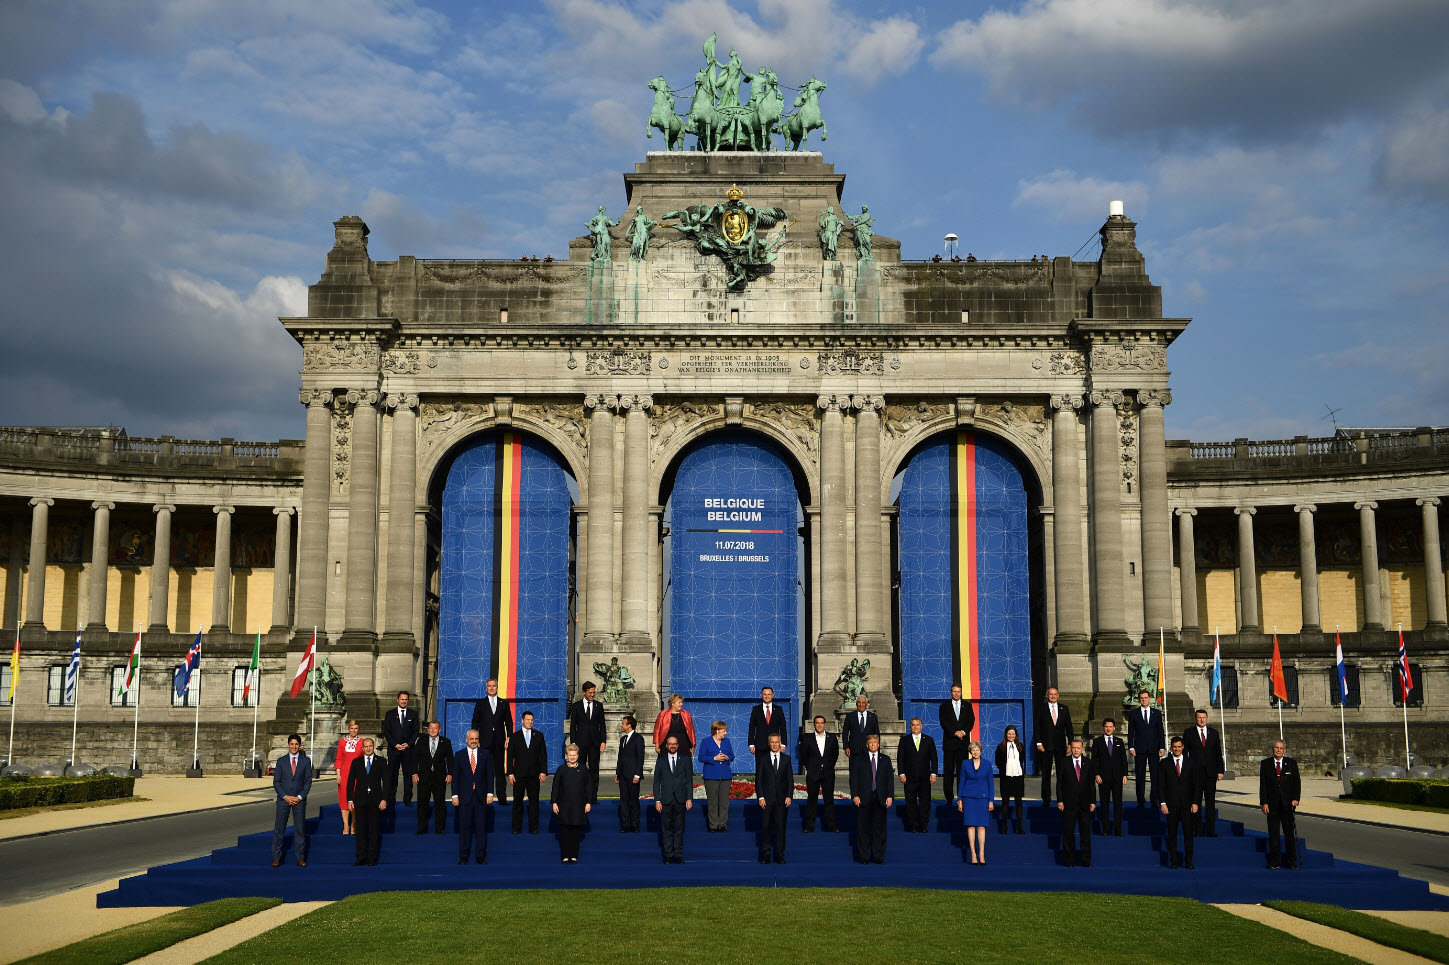 NATO leaders at the Parc du Cinquantenaire in Brussels.